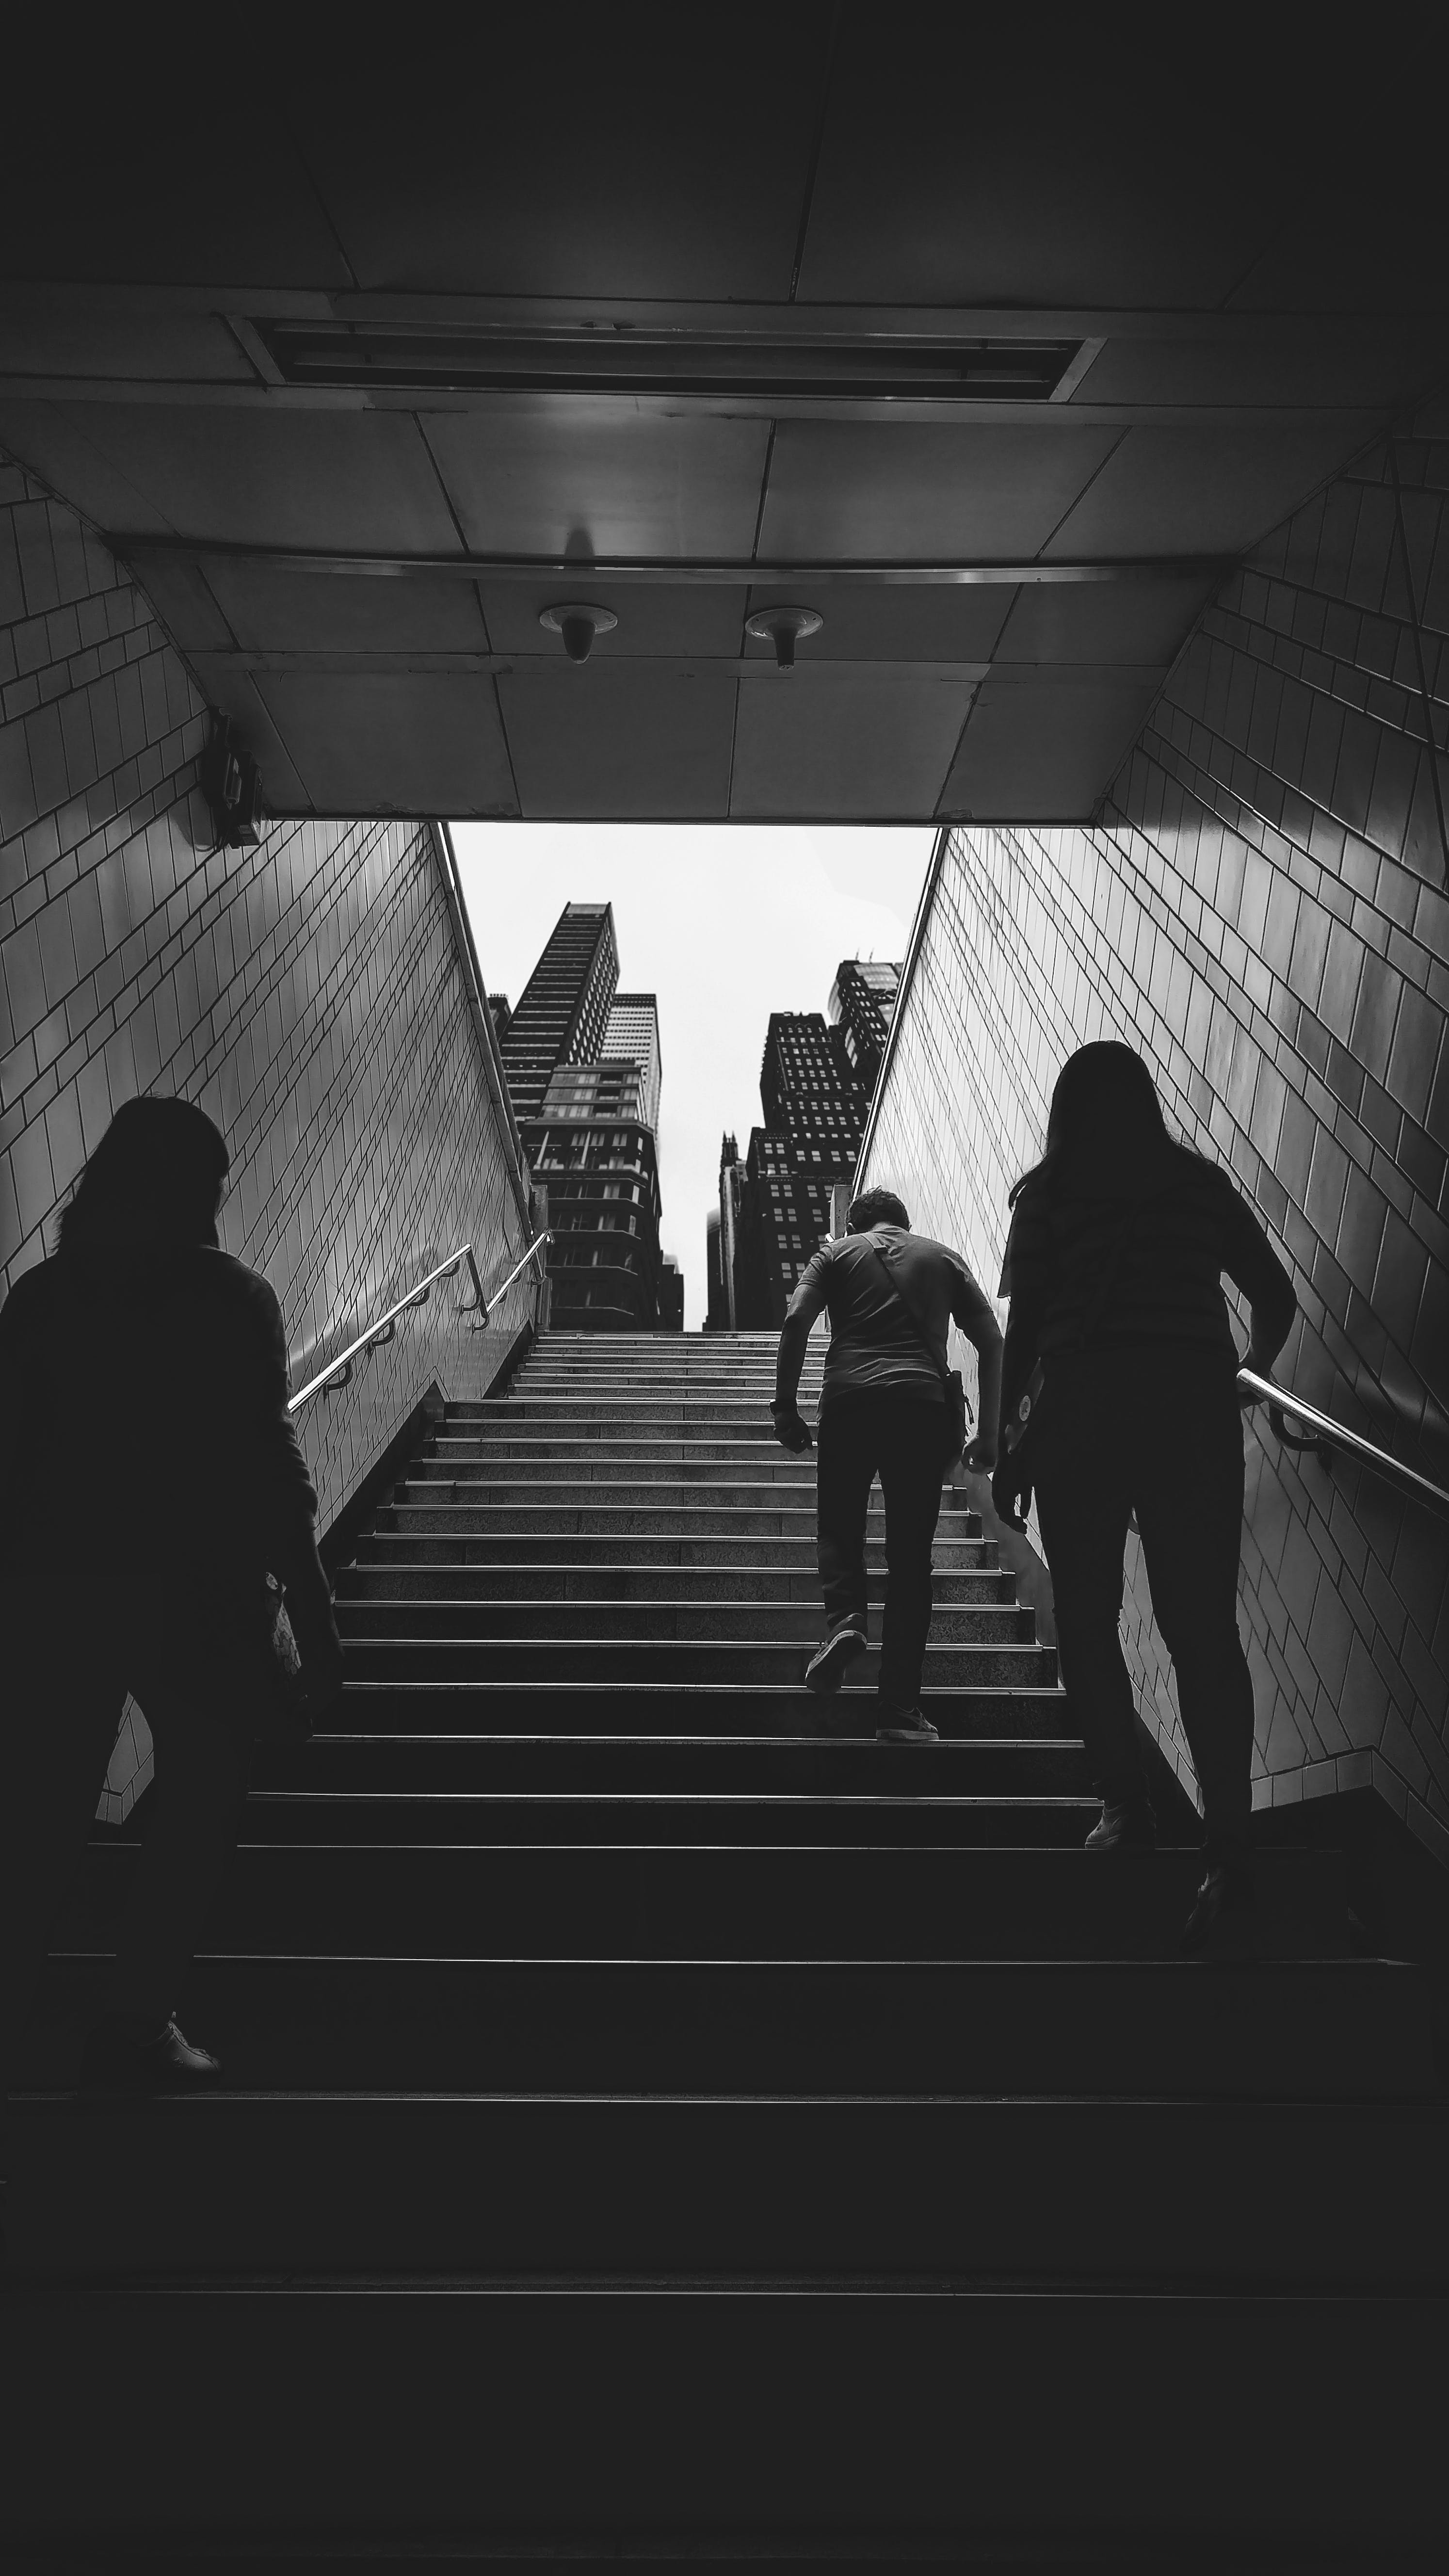 Free stock photo of black and white, building, staircase, underground